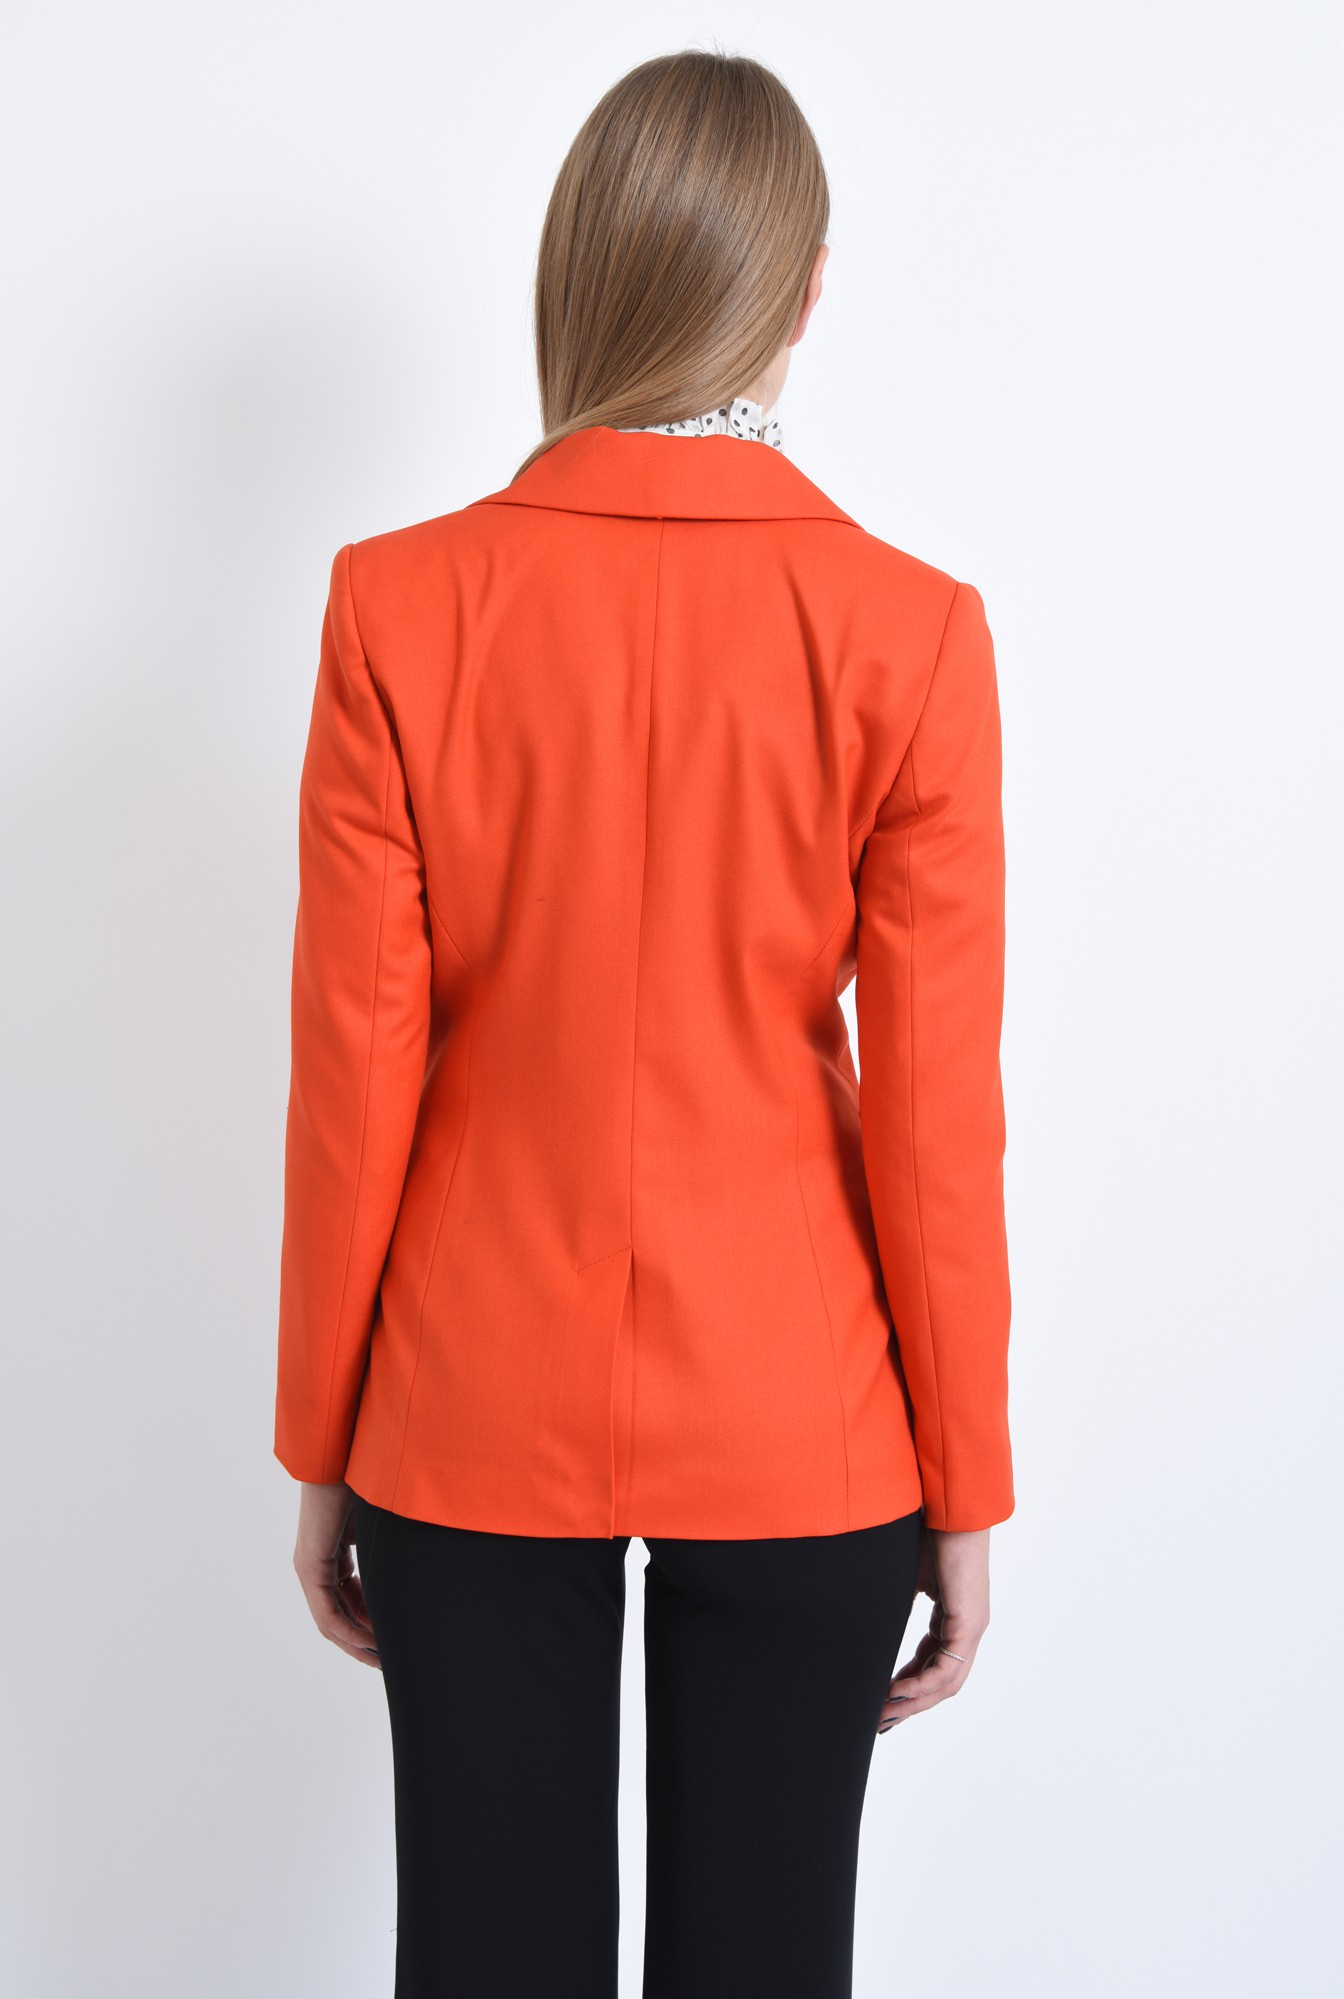 1 - SACOU OFFICE DREPT S 128-ORANGE